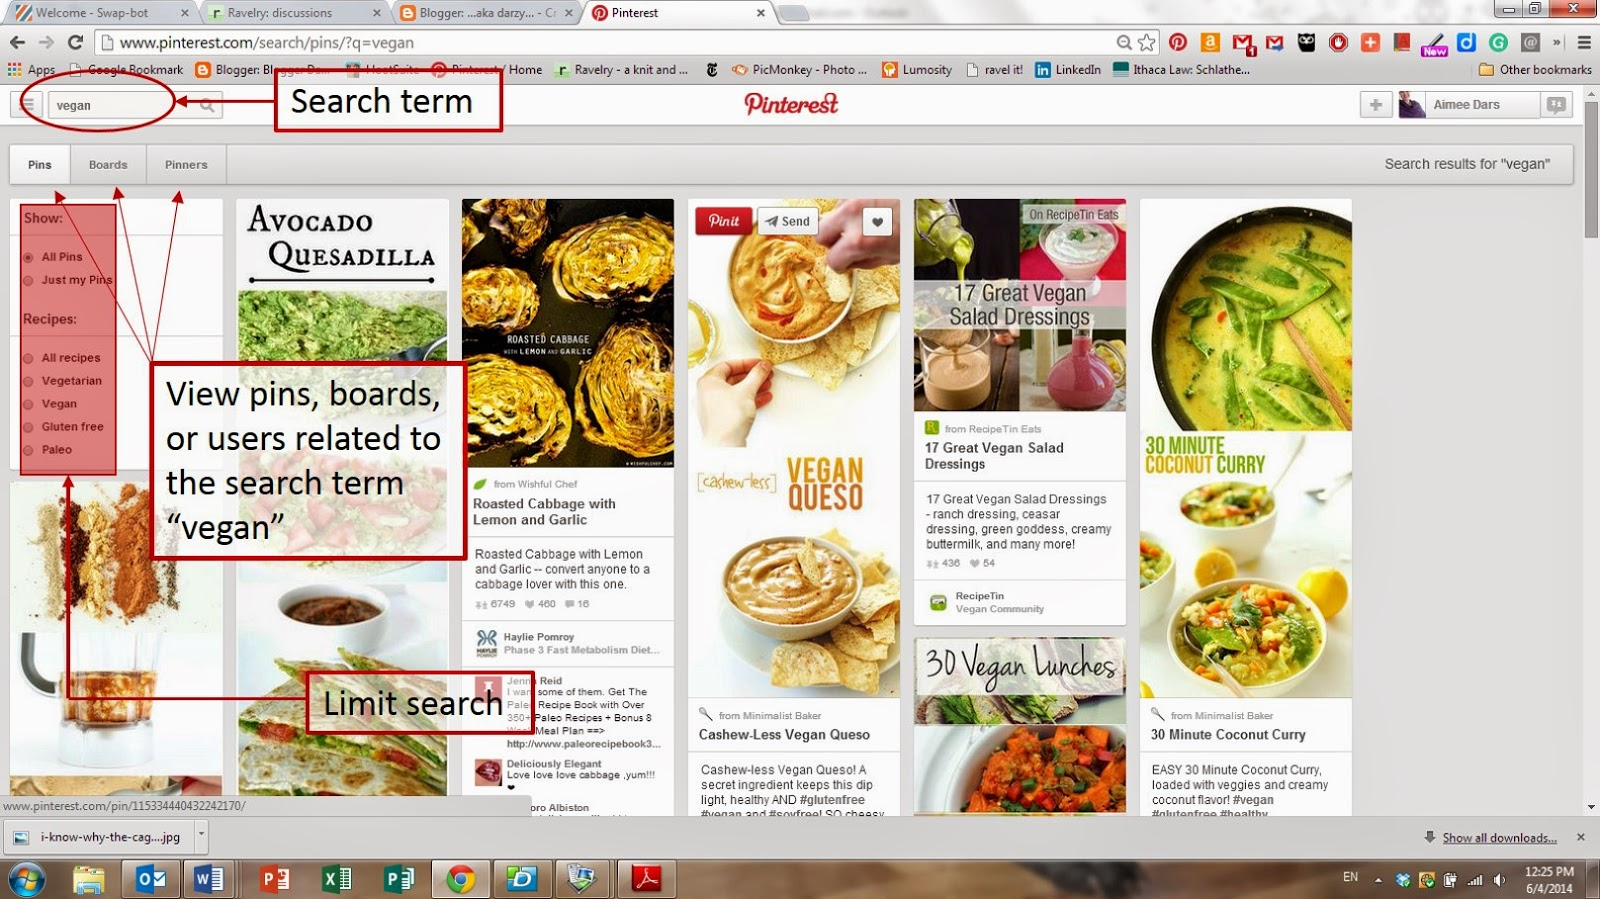 Tutorial for searching on pinterest